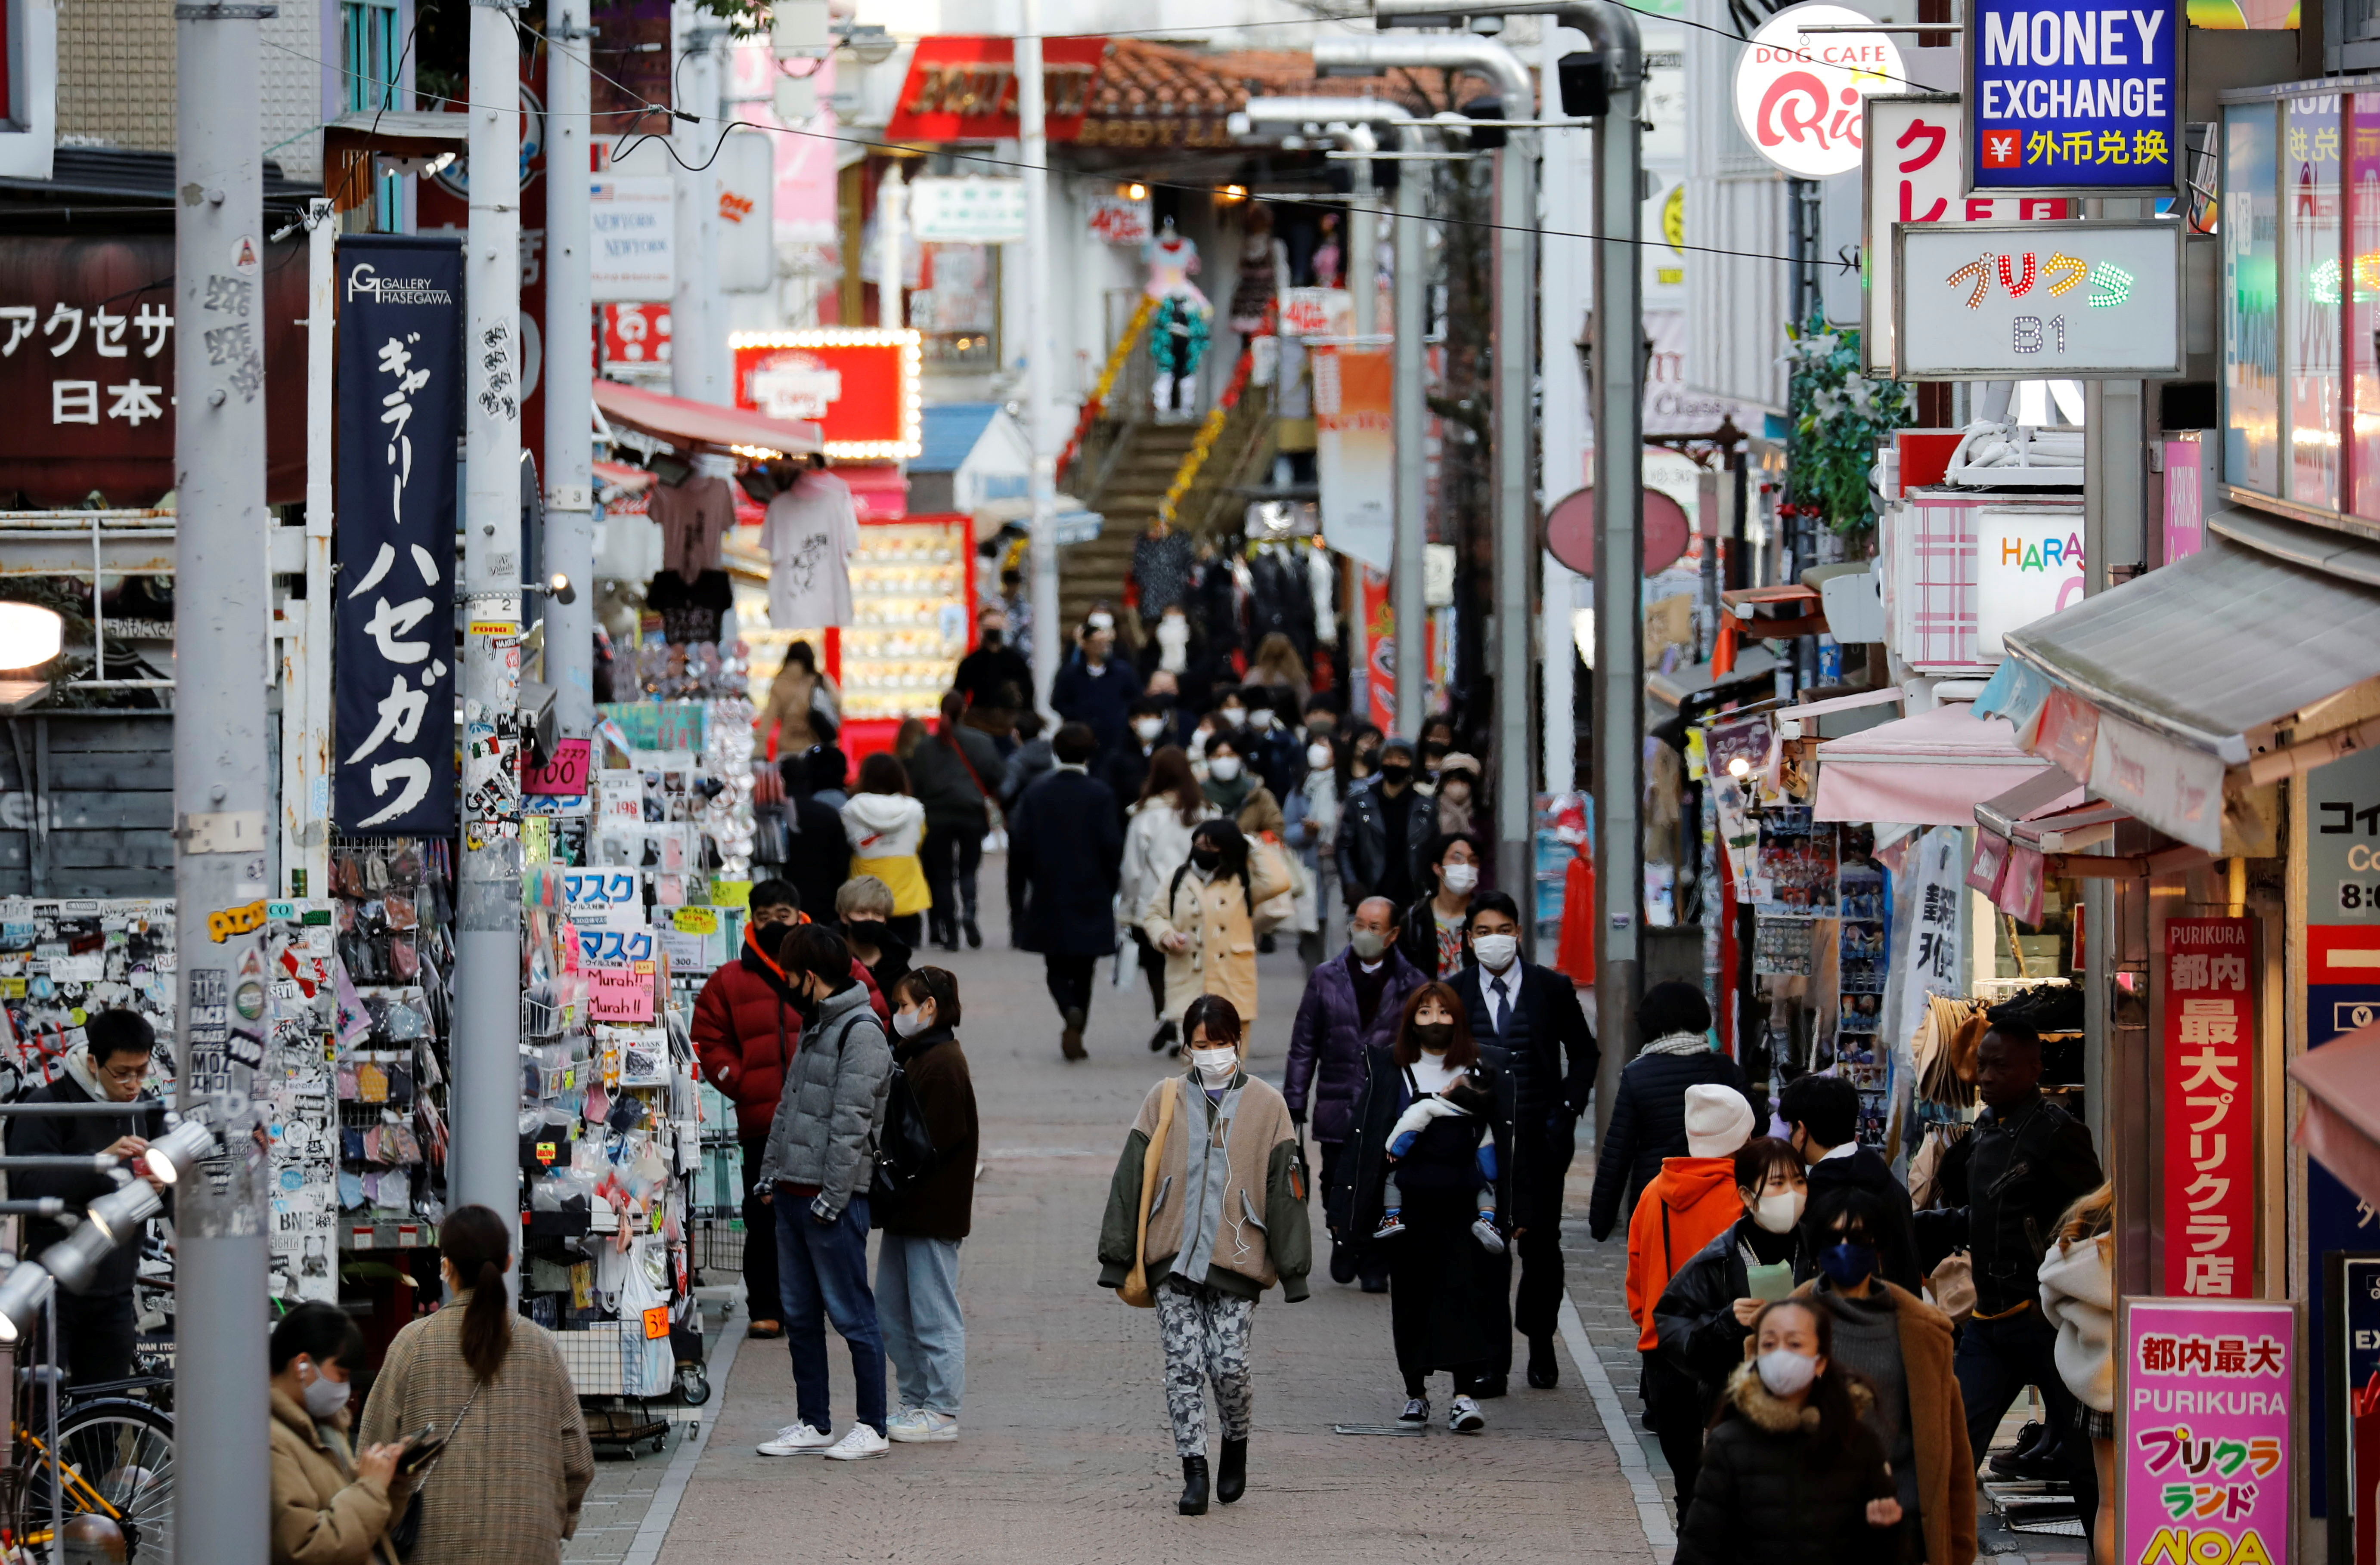 Pedestrians wearing protective masks make their way at a shopping district, amid the coronavirus disease (COVID-19) outbreak, in Tokyo, Japan, January 8, 2021. REUTERS/Kim Kyung-Hoon - RC2L3L9GEJWB